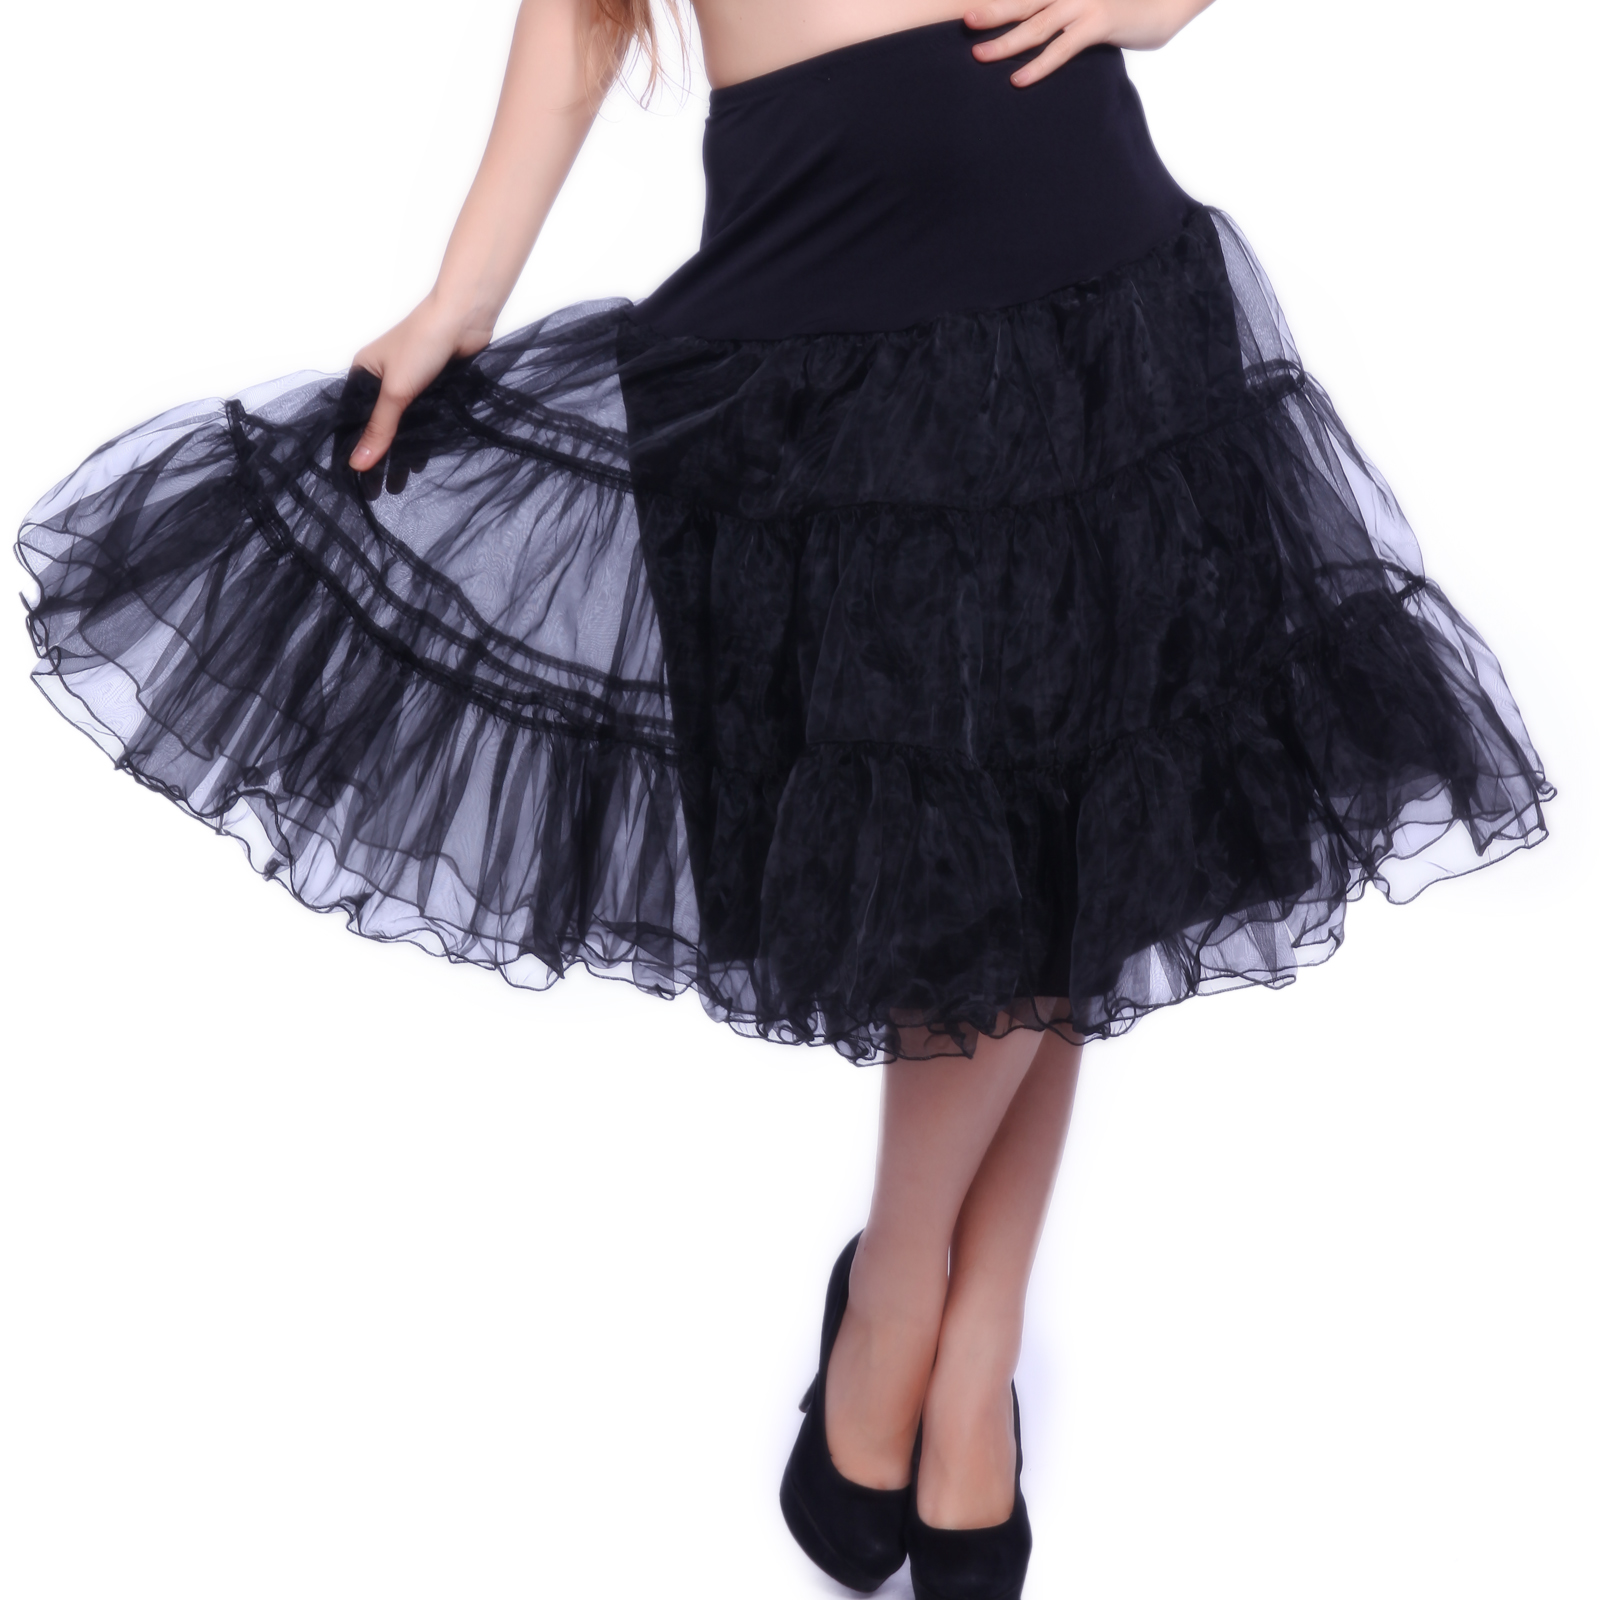 You searched for: slip tulle skirt! Etsy is the home to thousands of handmade, vintage, and one-of-a-kind products and gifts related to your search. No matter what you're looking for or where you are in the world, our global marketplace of sellers can help you find unique and affordable options. Let's get started!